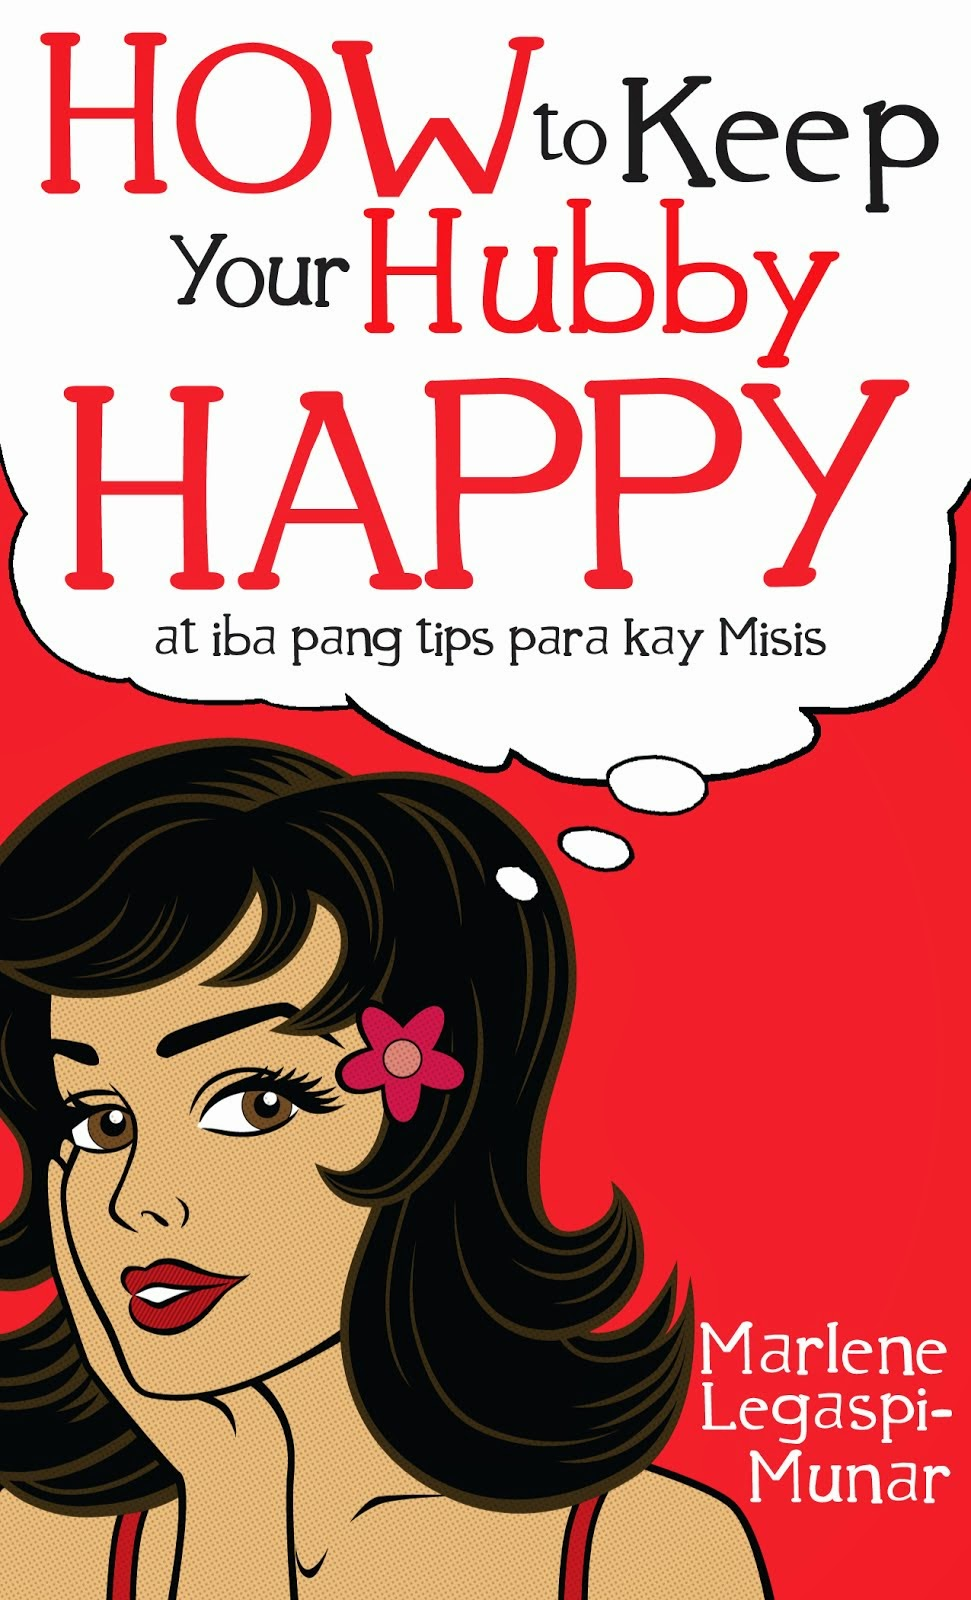 How to Keep Your Hubby Happy at Iba pang Tips para kay Misis